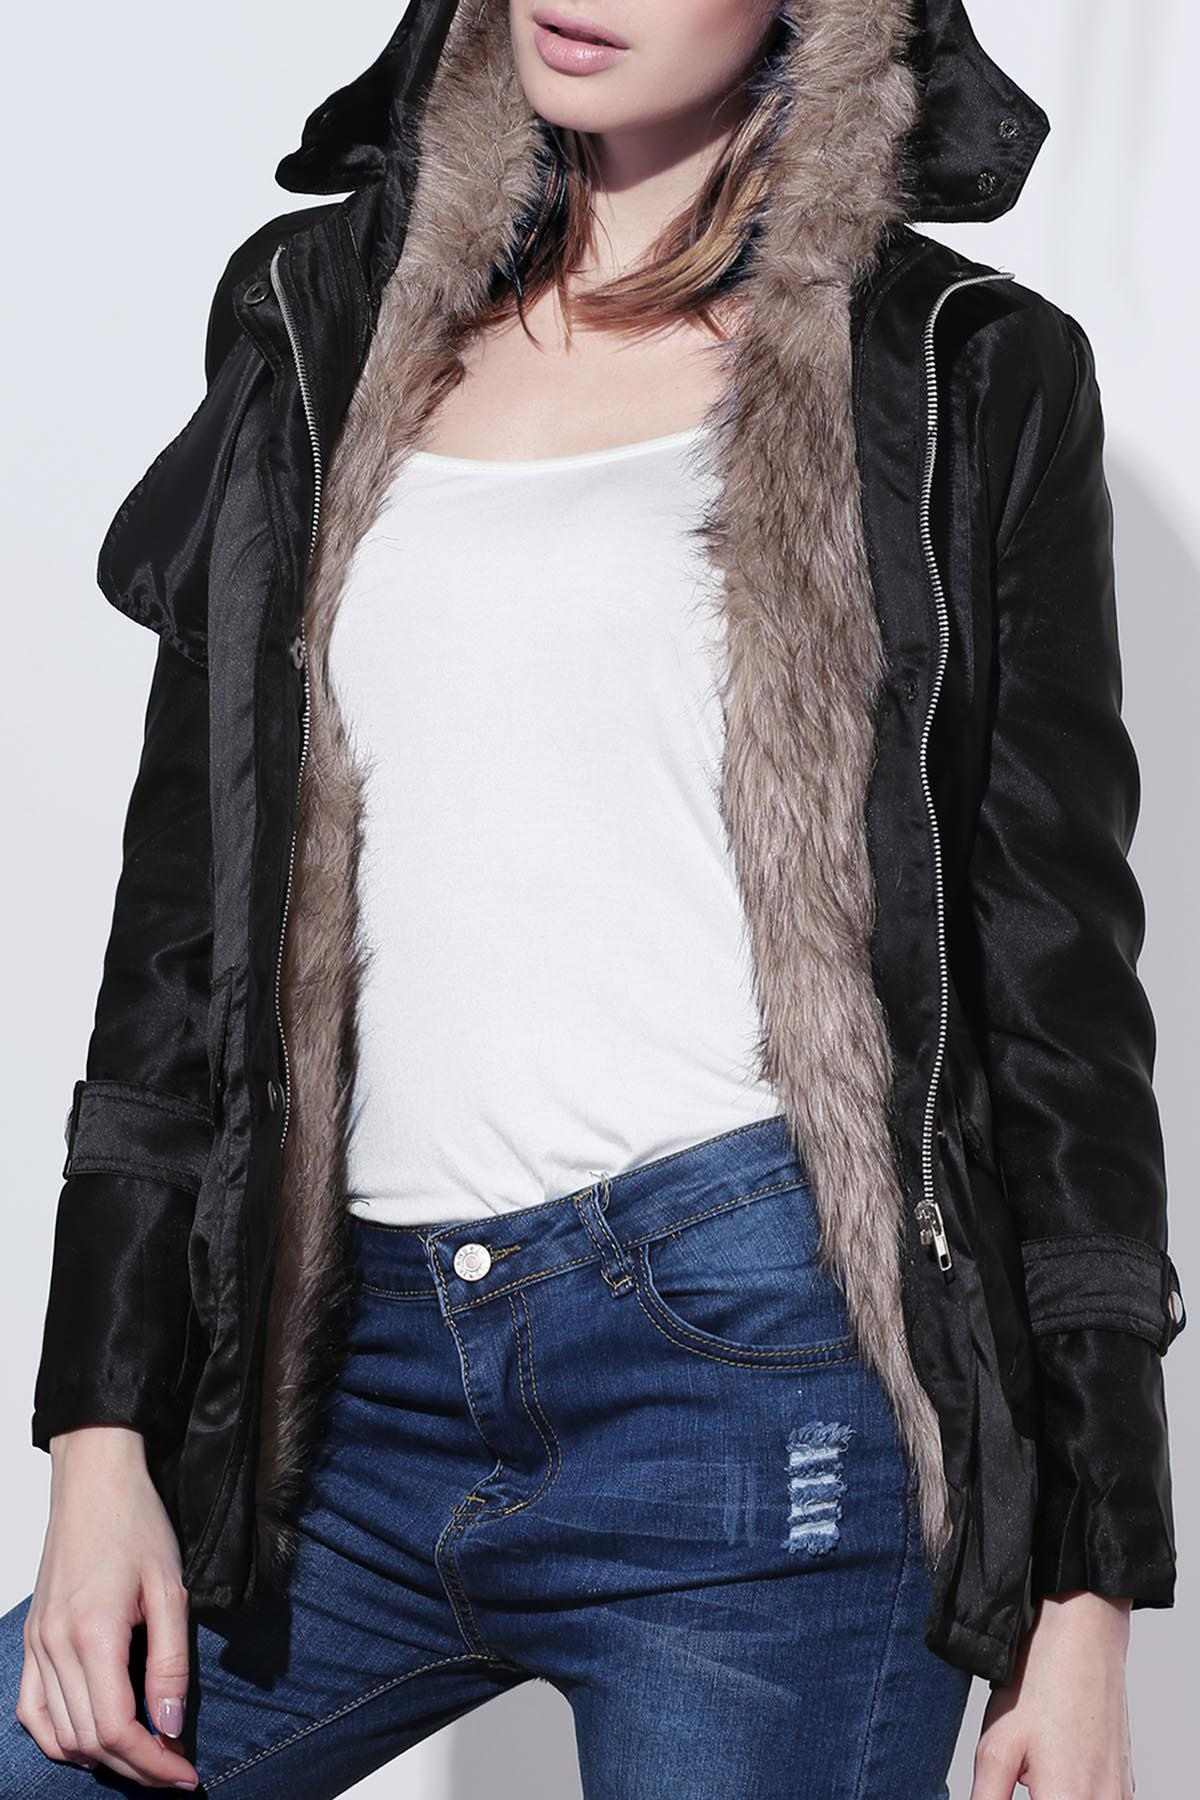 Women's Cotton Solid Color Thickened Faux Fur Lined Waistband Beam Waist Pockets Korean Style Stylish Coat - BLACK L